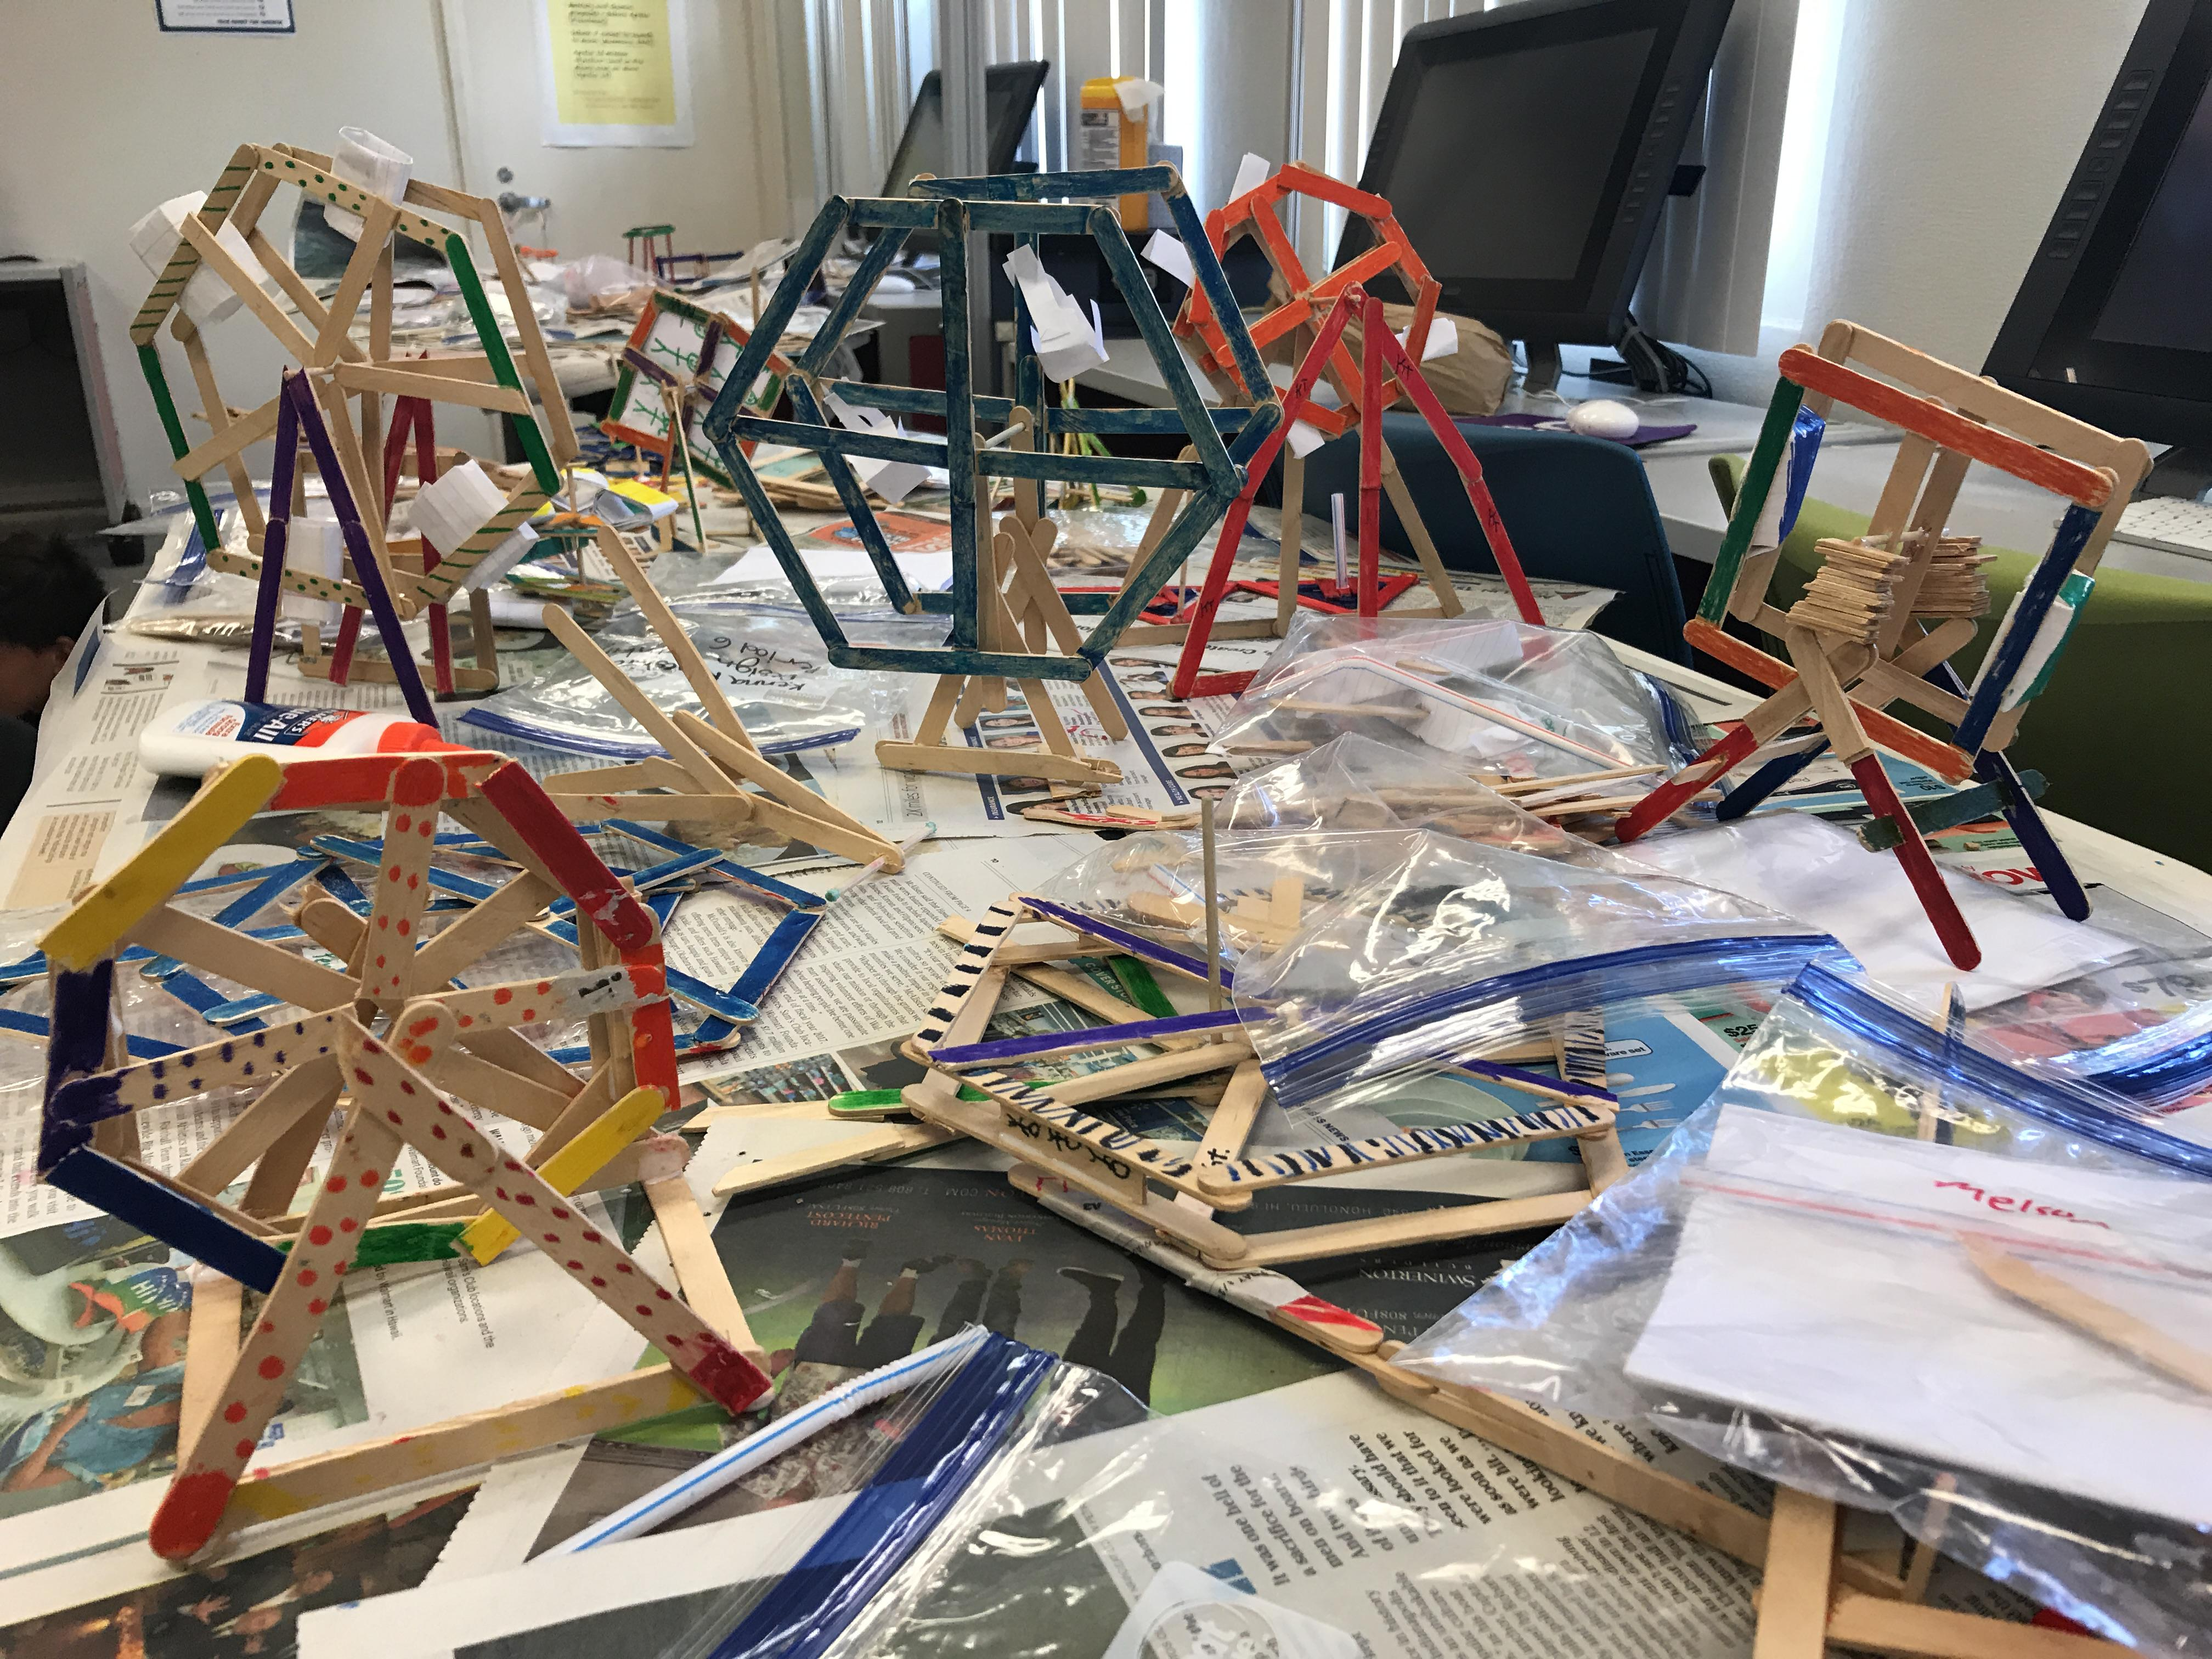 Low Tech Prototyping Ferris Wheels Mid Pacific Institute